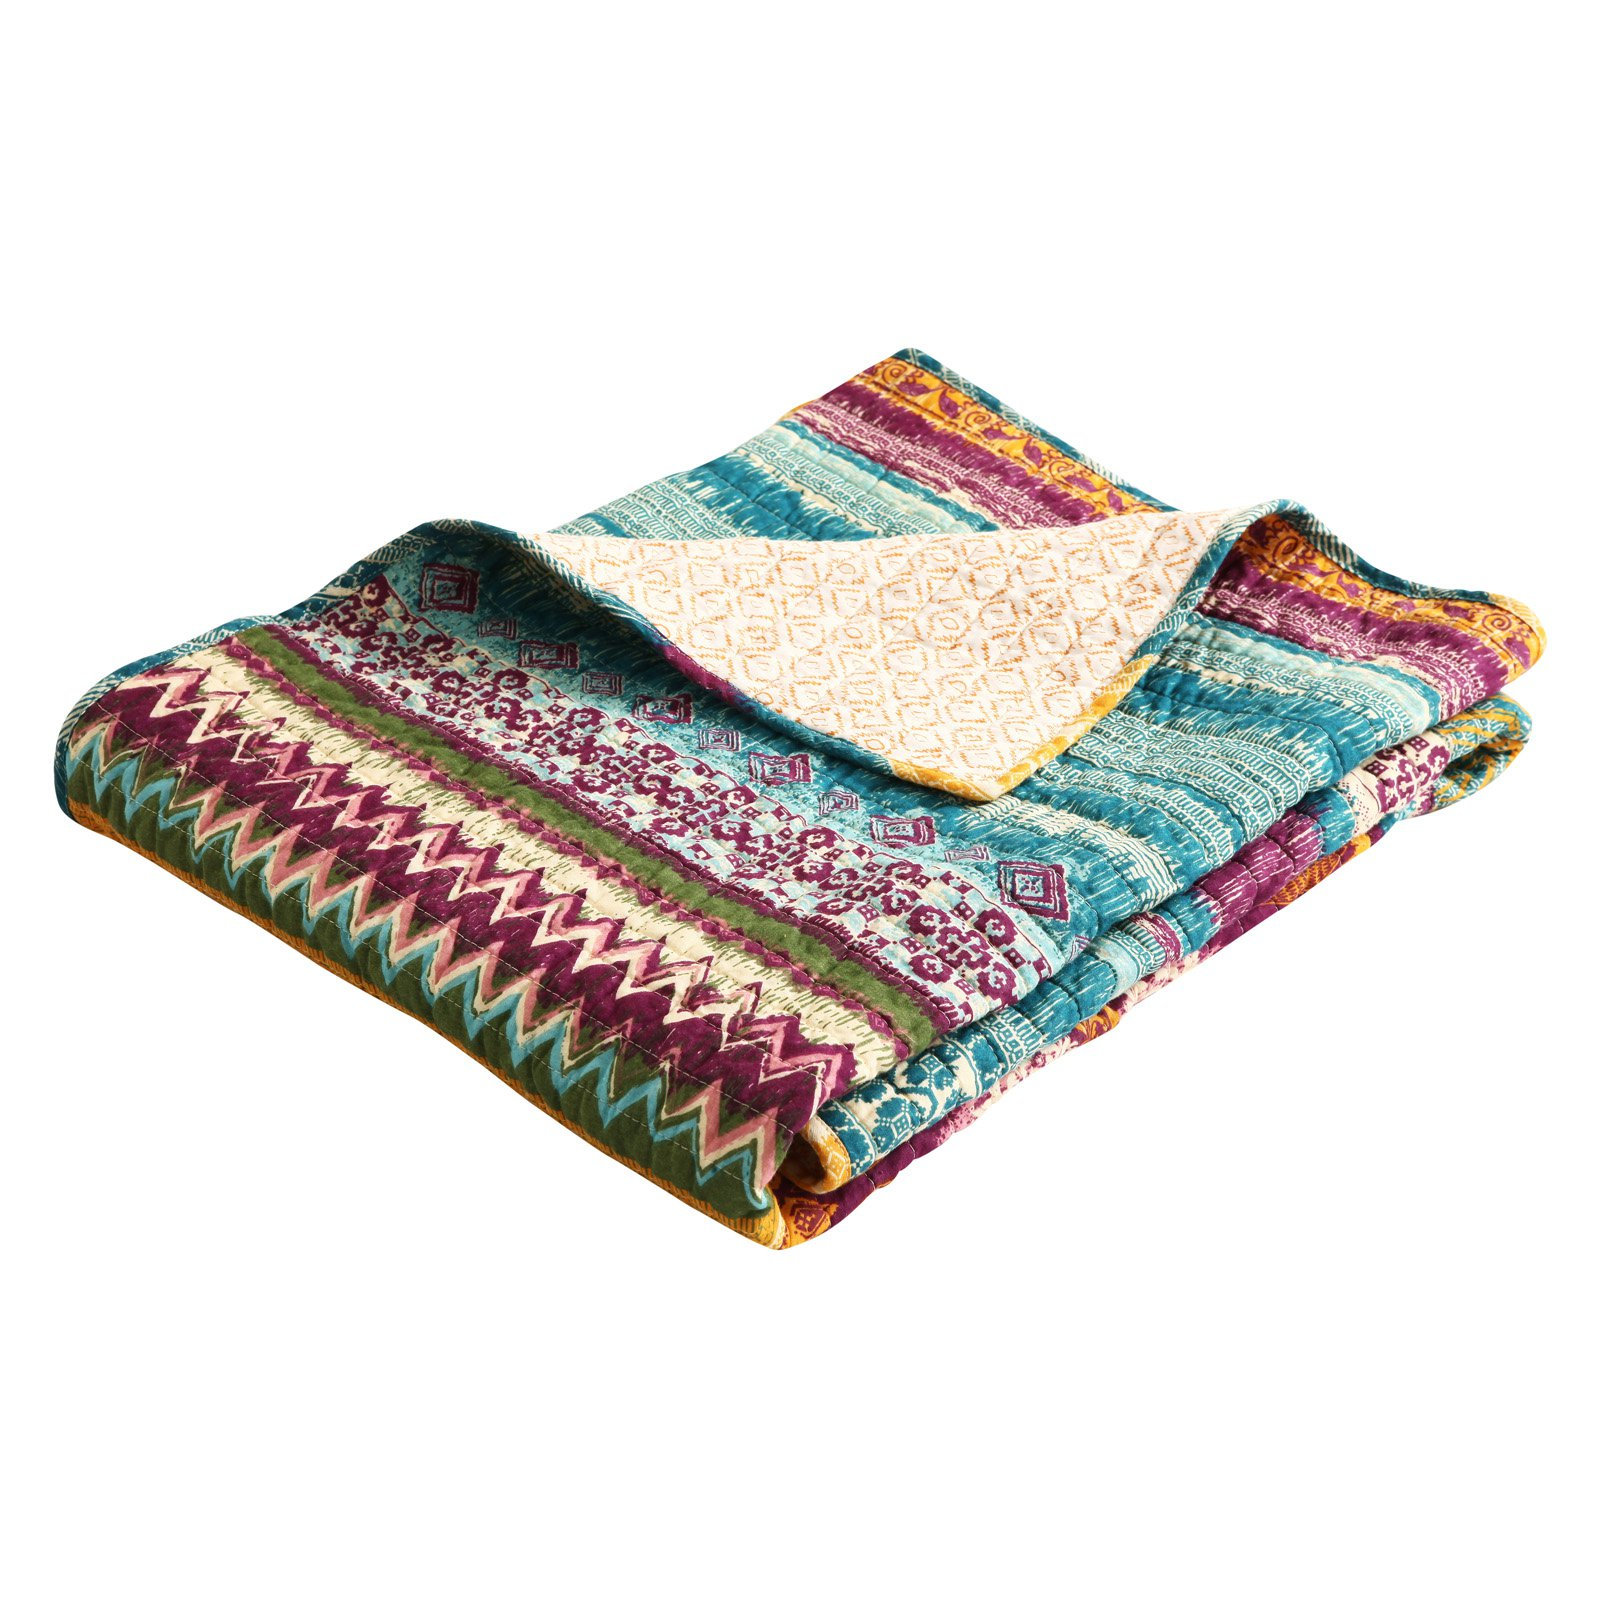 Greenland Home Fashions Southwest Cotton Throw Blanket